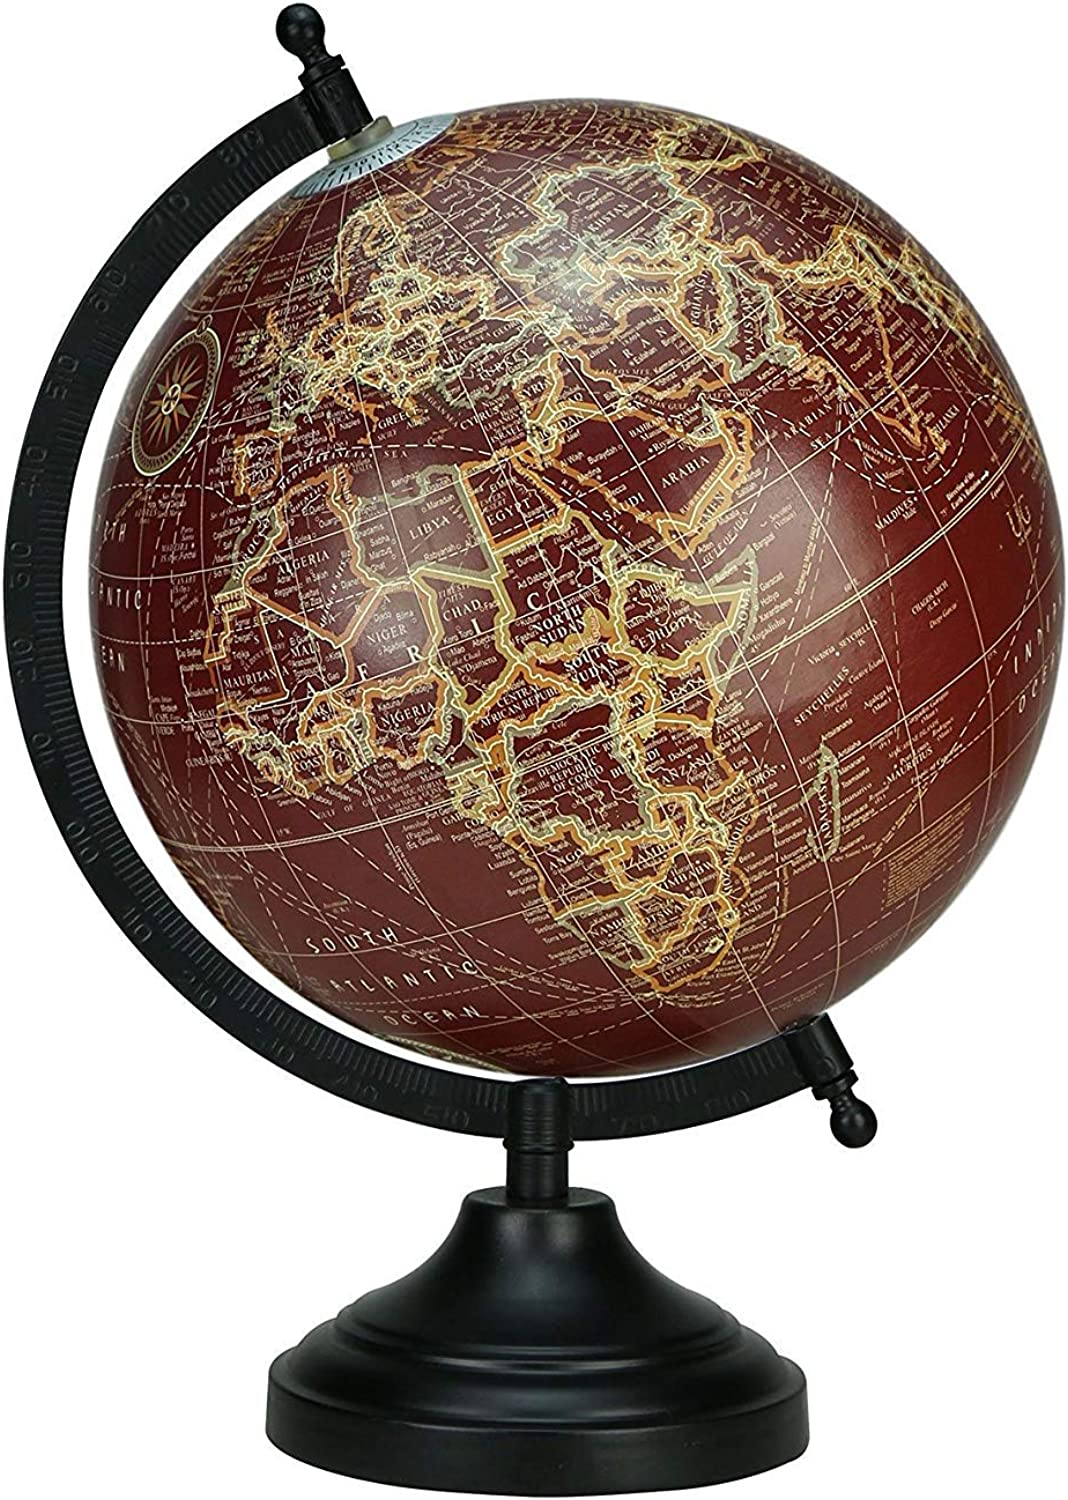 redating Desktop Globe Brown color Globe Table Decor Ocean Geographical Earth by Globes HubPerfect for Home, Office & Classroom